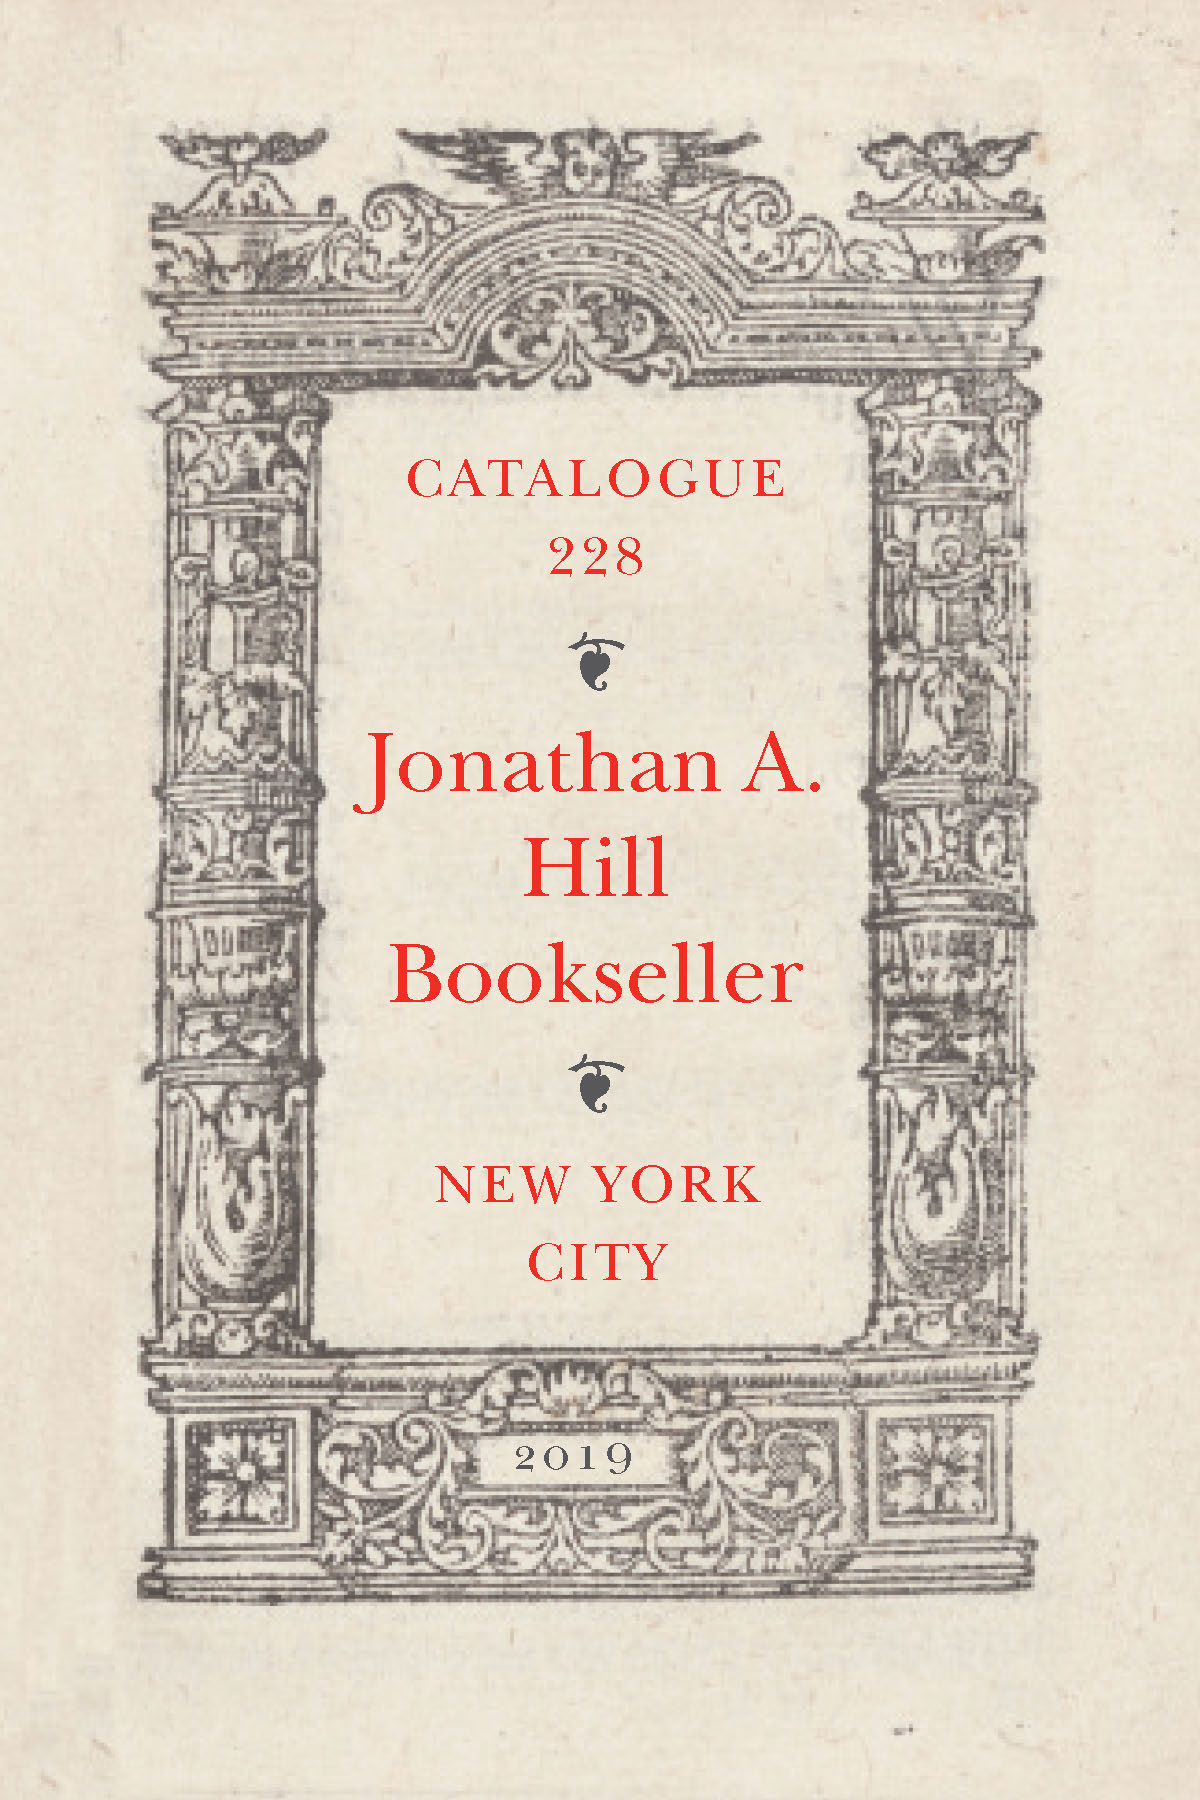 Catalogue 228